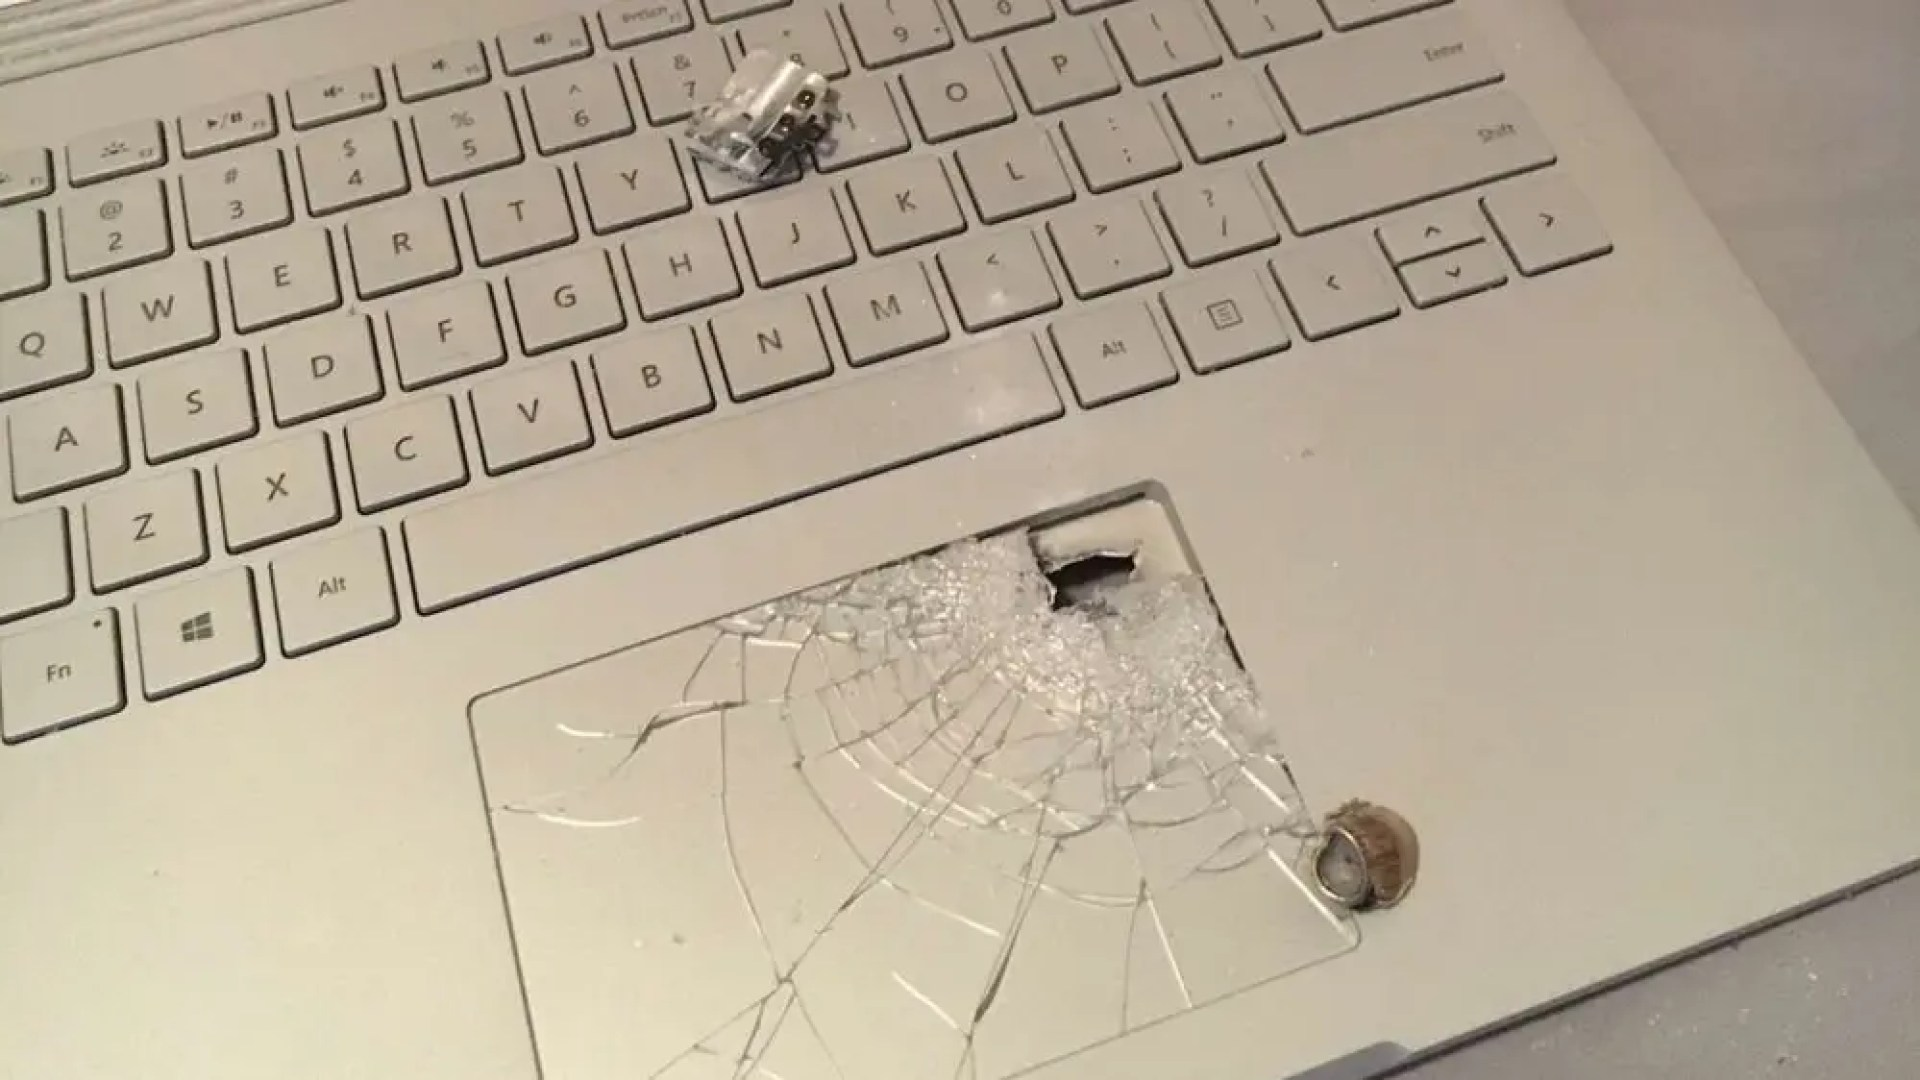 Bullet lodged in a Surface Book laptop